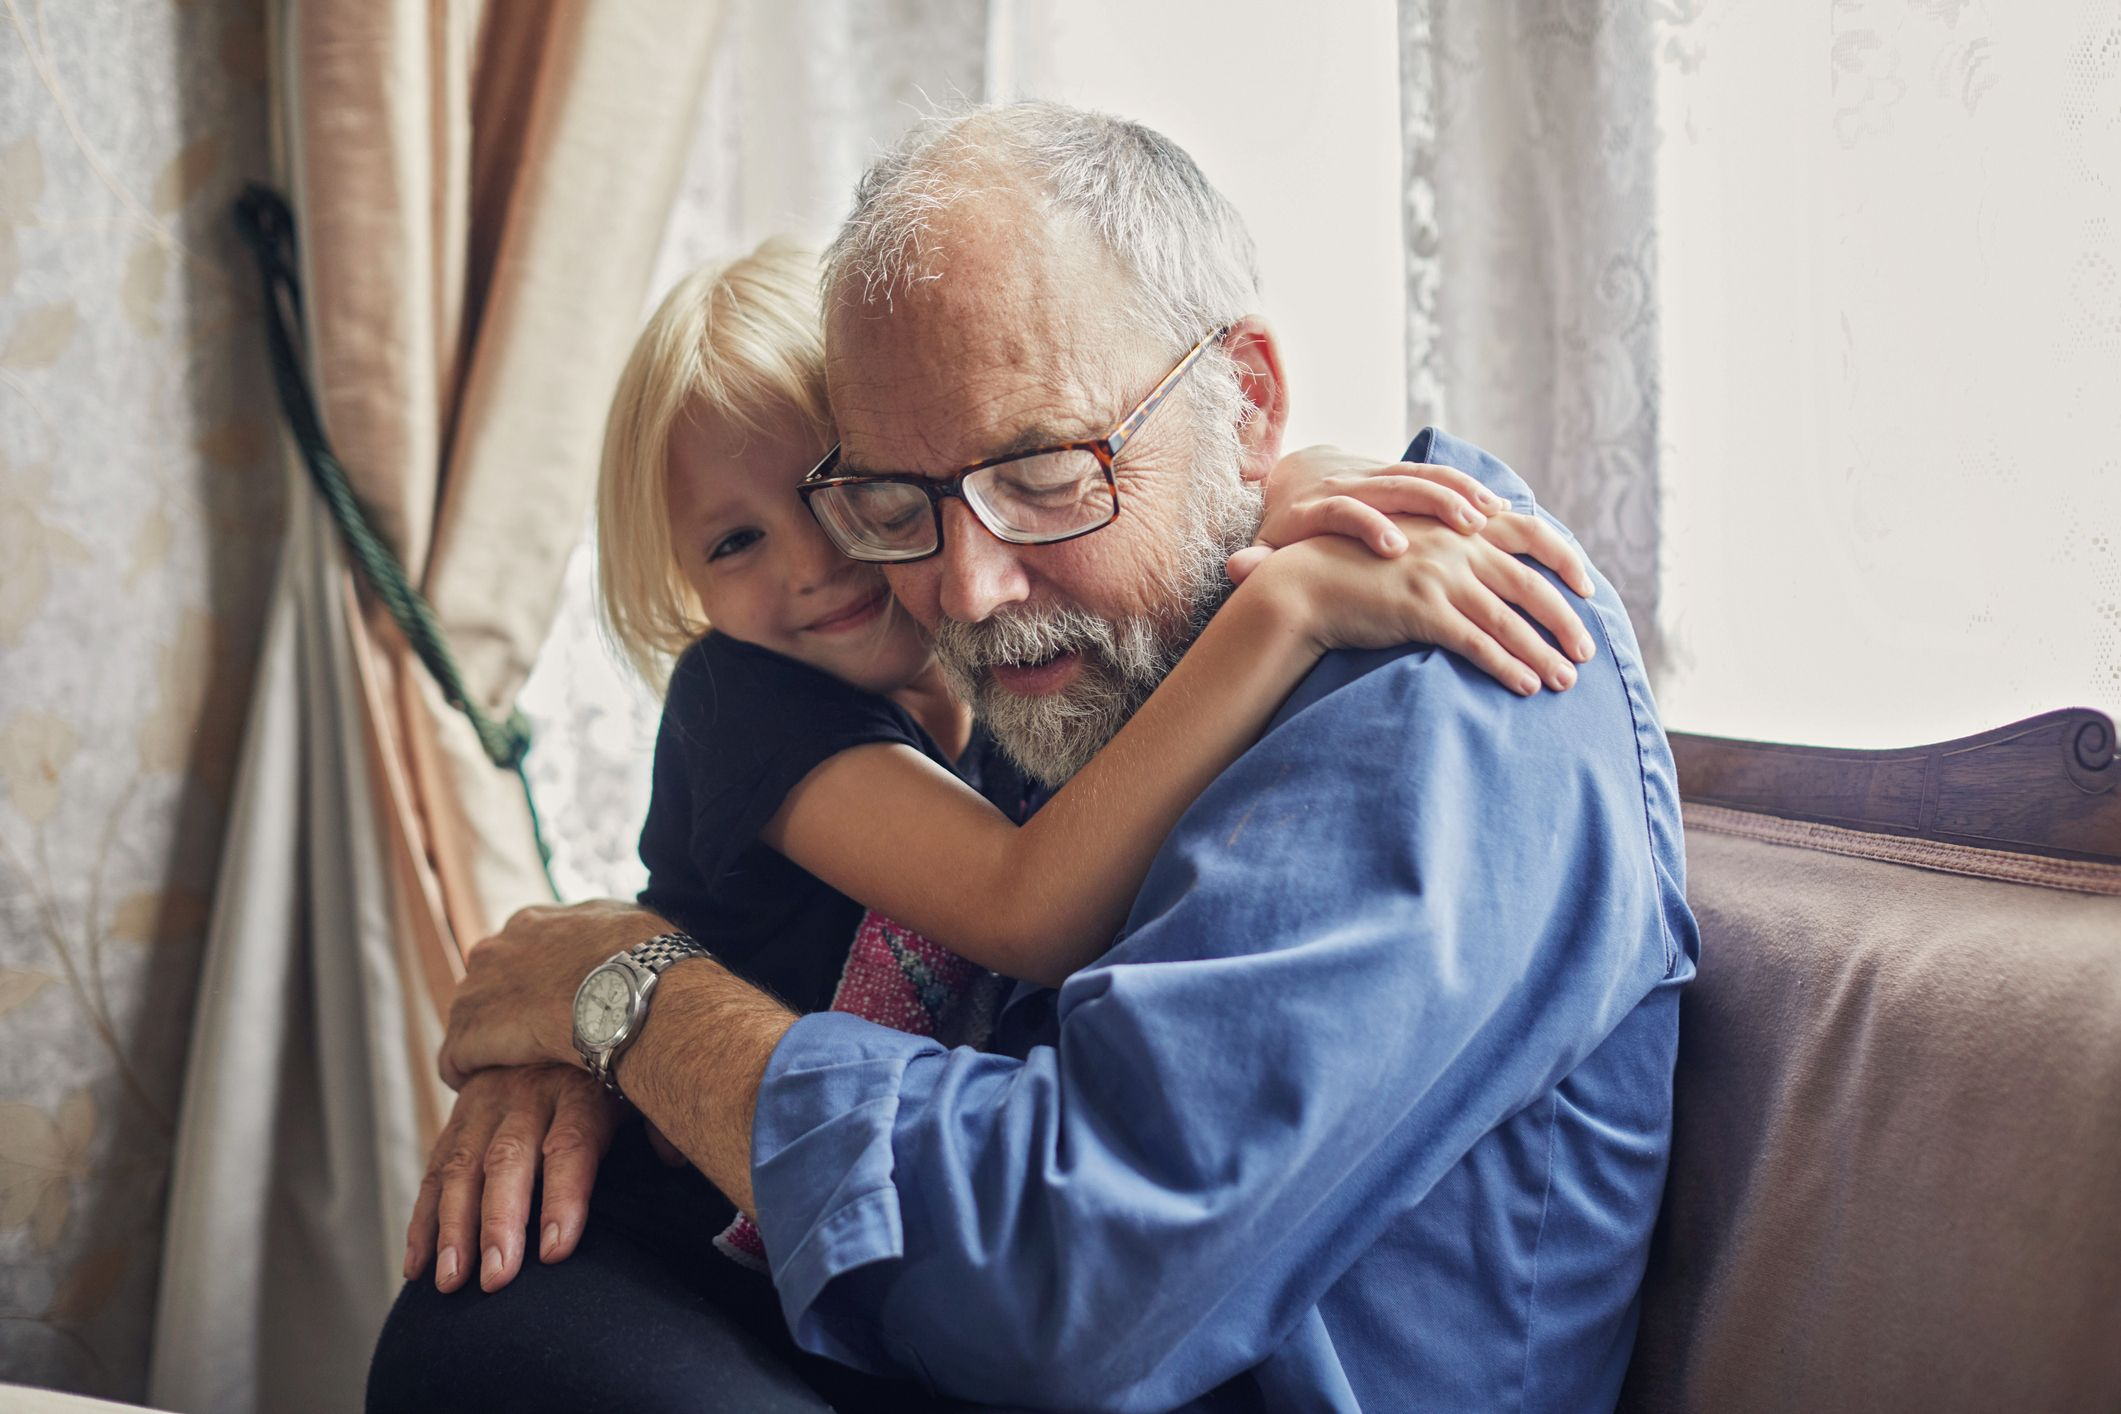 A grandfather hugging his grandson. | Source: Shutterstock